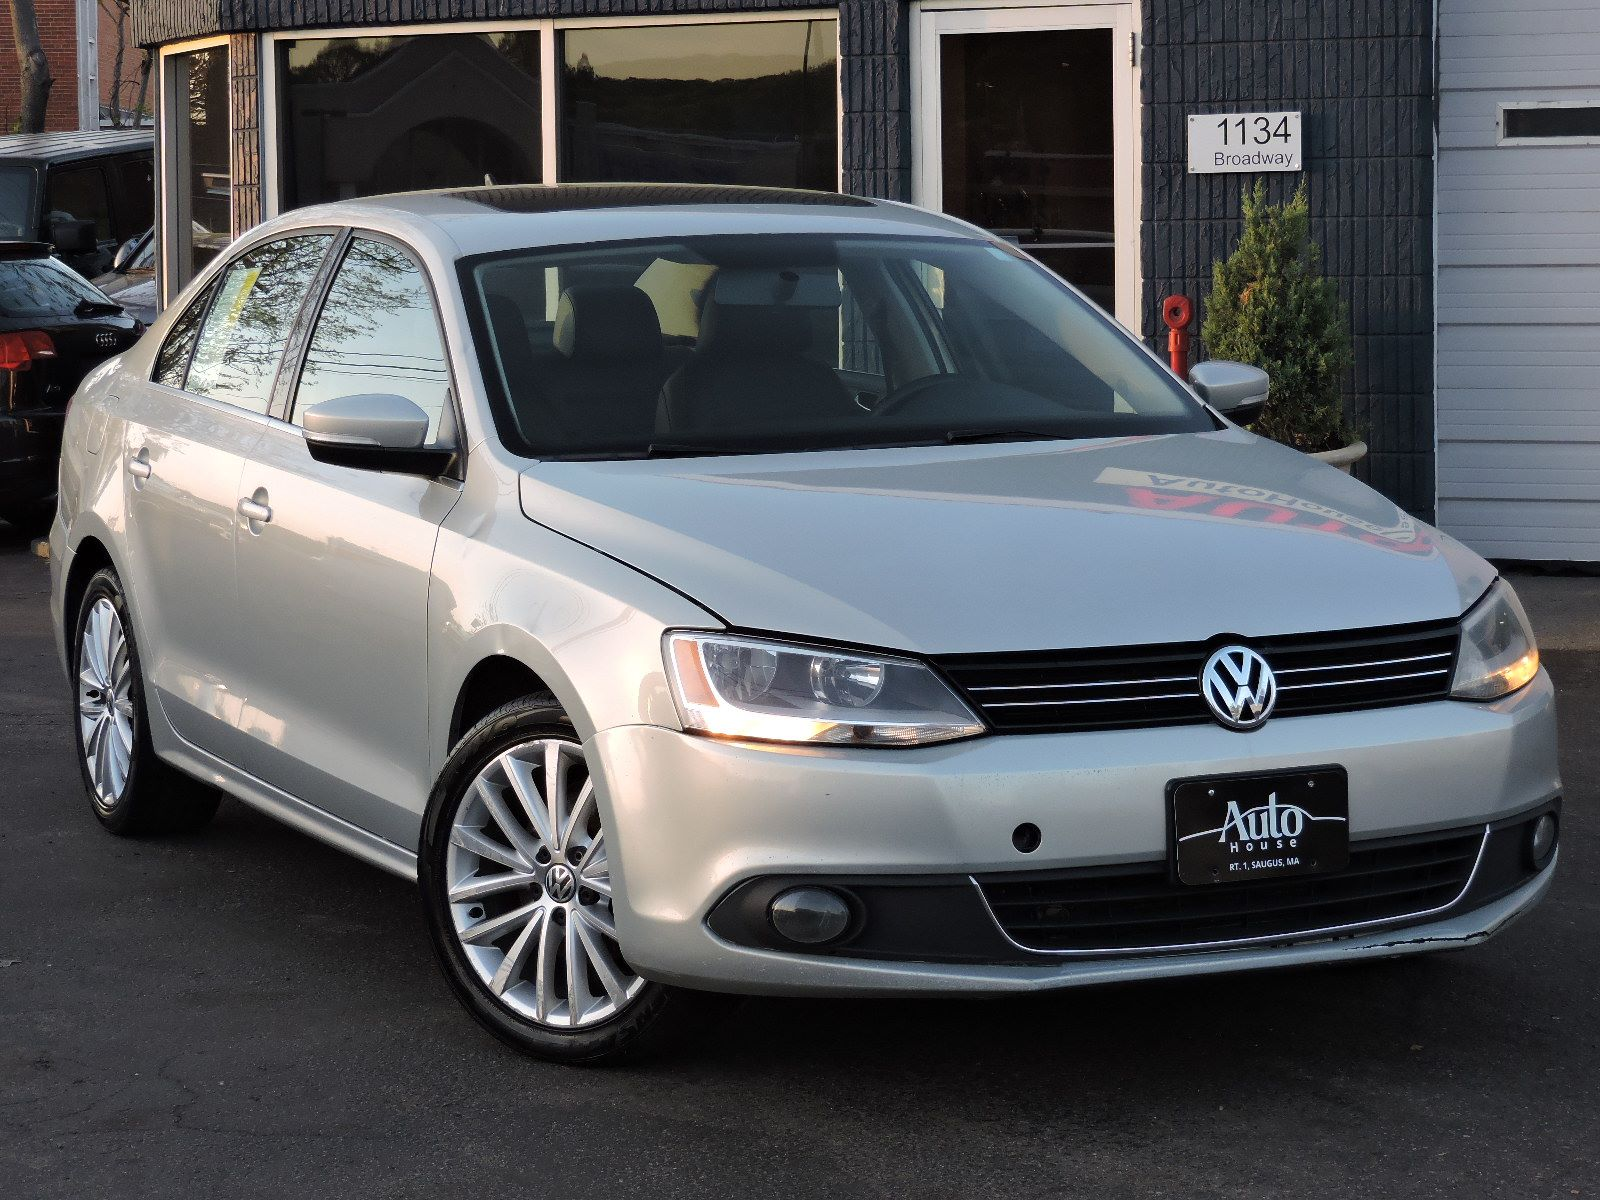 used 2011 volkswagen jetta sedan sel wsunroof pzev at saugus auto mall. Black Bedroom Furniture Sets. Home Design Ideas